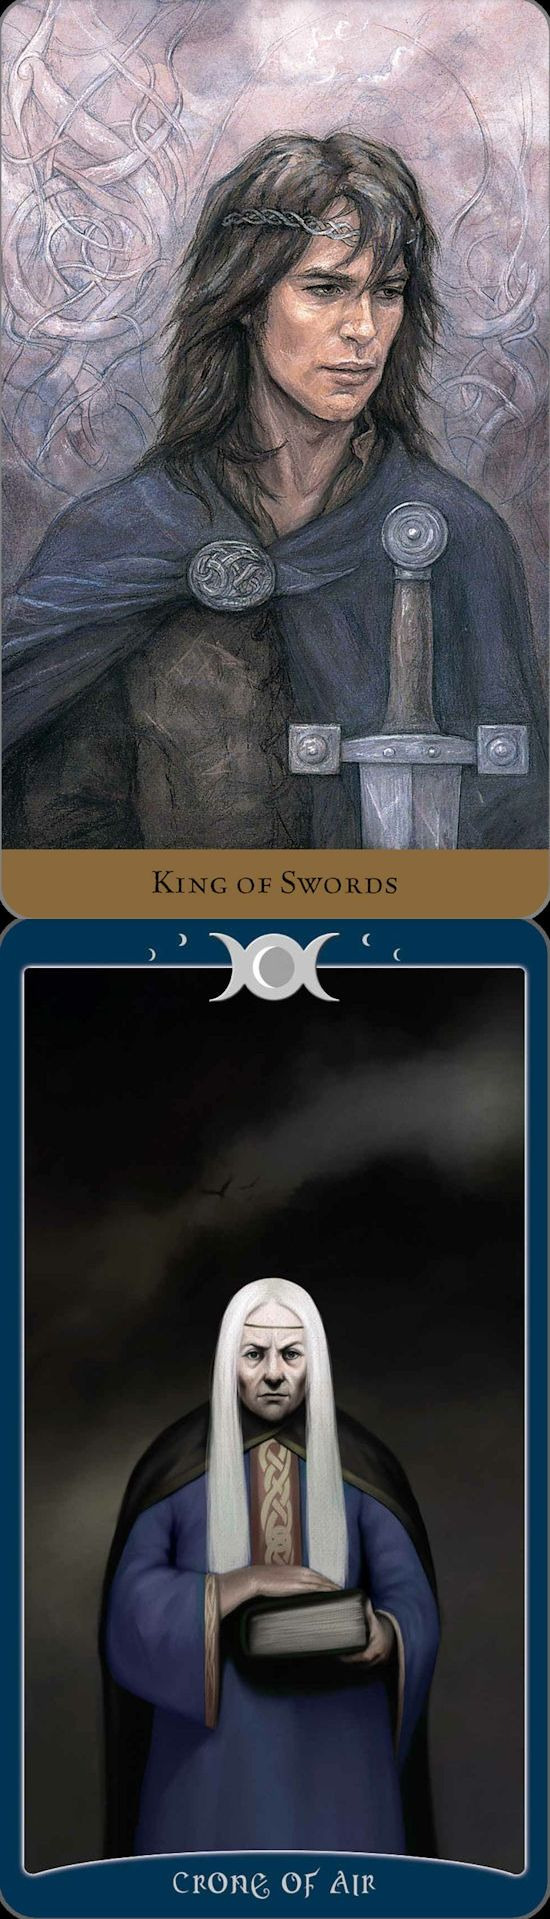 King of Swords: calm intellect and using intelligence for selfish aims (reverse). Hidden Realm Tarot deck and Book Of Shadows Tarot deck: tarothobbit, online tarot card reading in hindi vs free love reading. Best 2018 tarot deck blessing and cartomancy meanings.